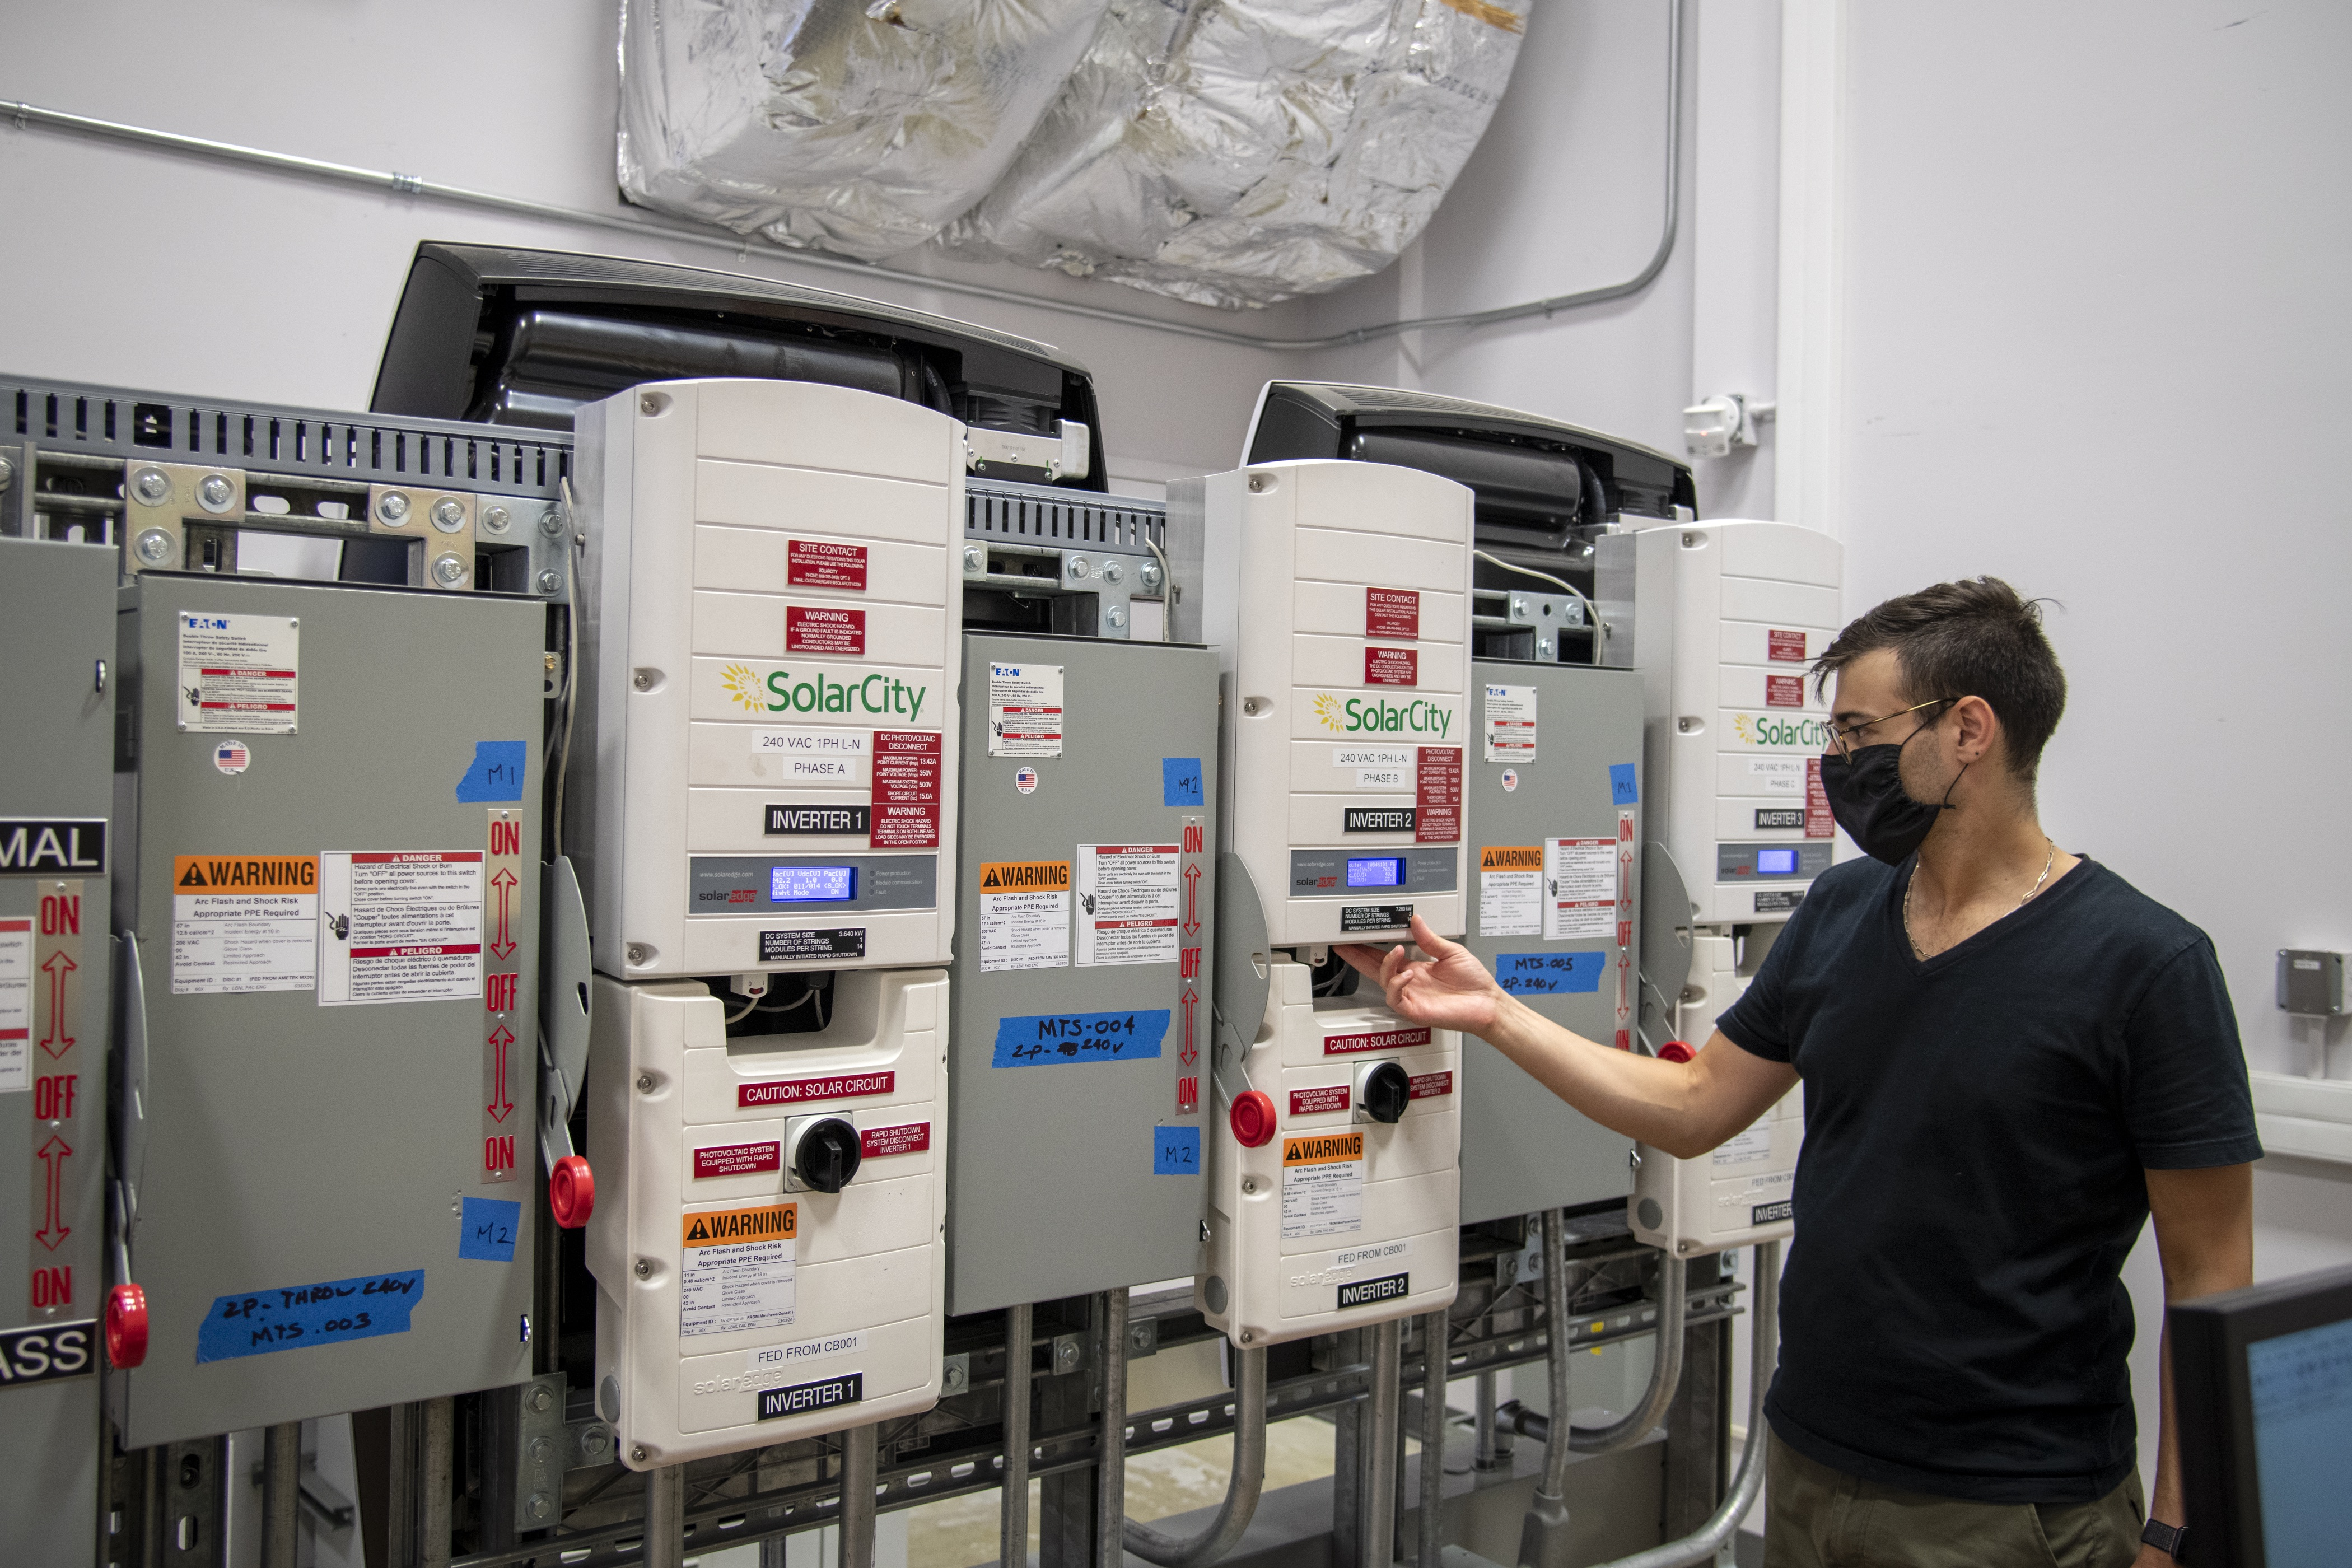 ENERGISE Project at Lawrence Berkeley National Laboratory